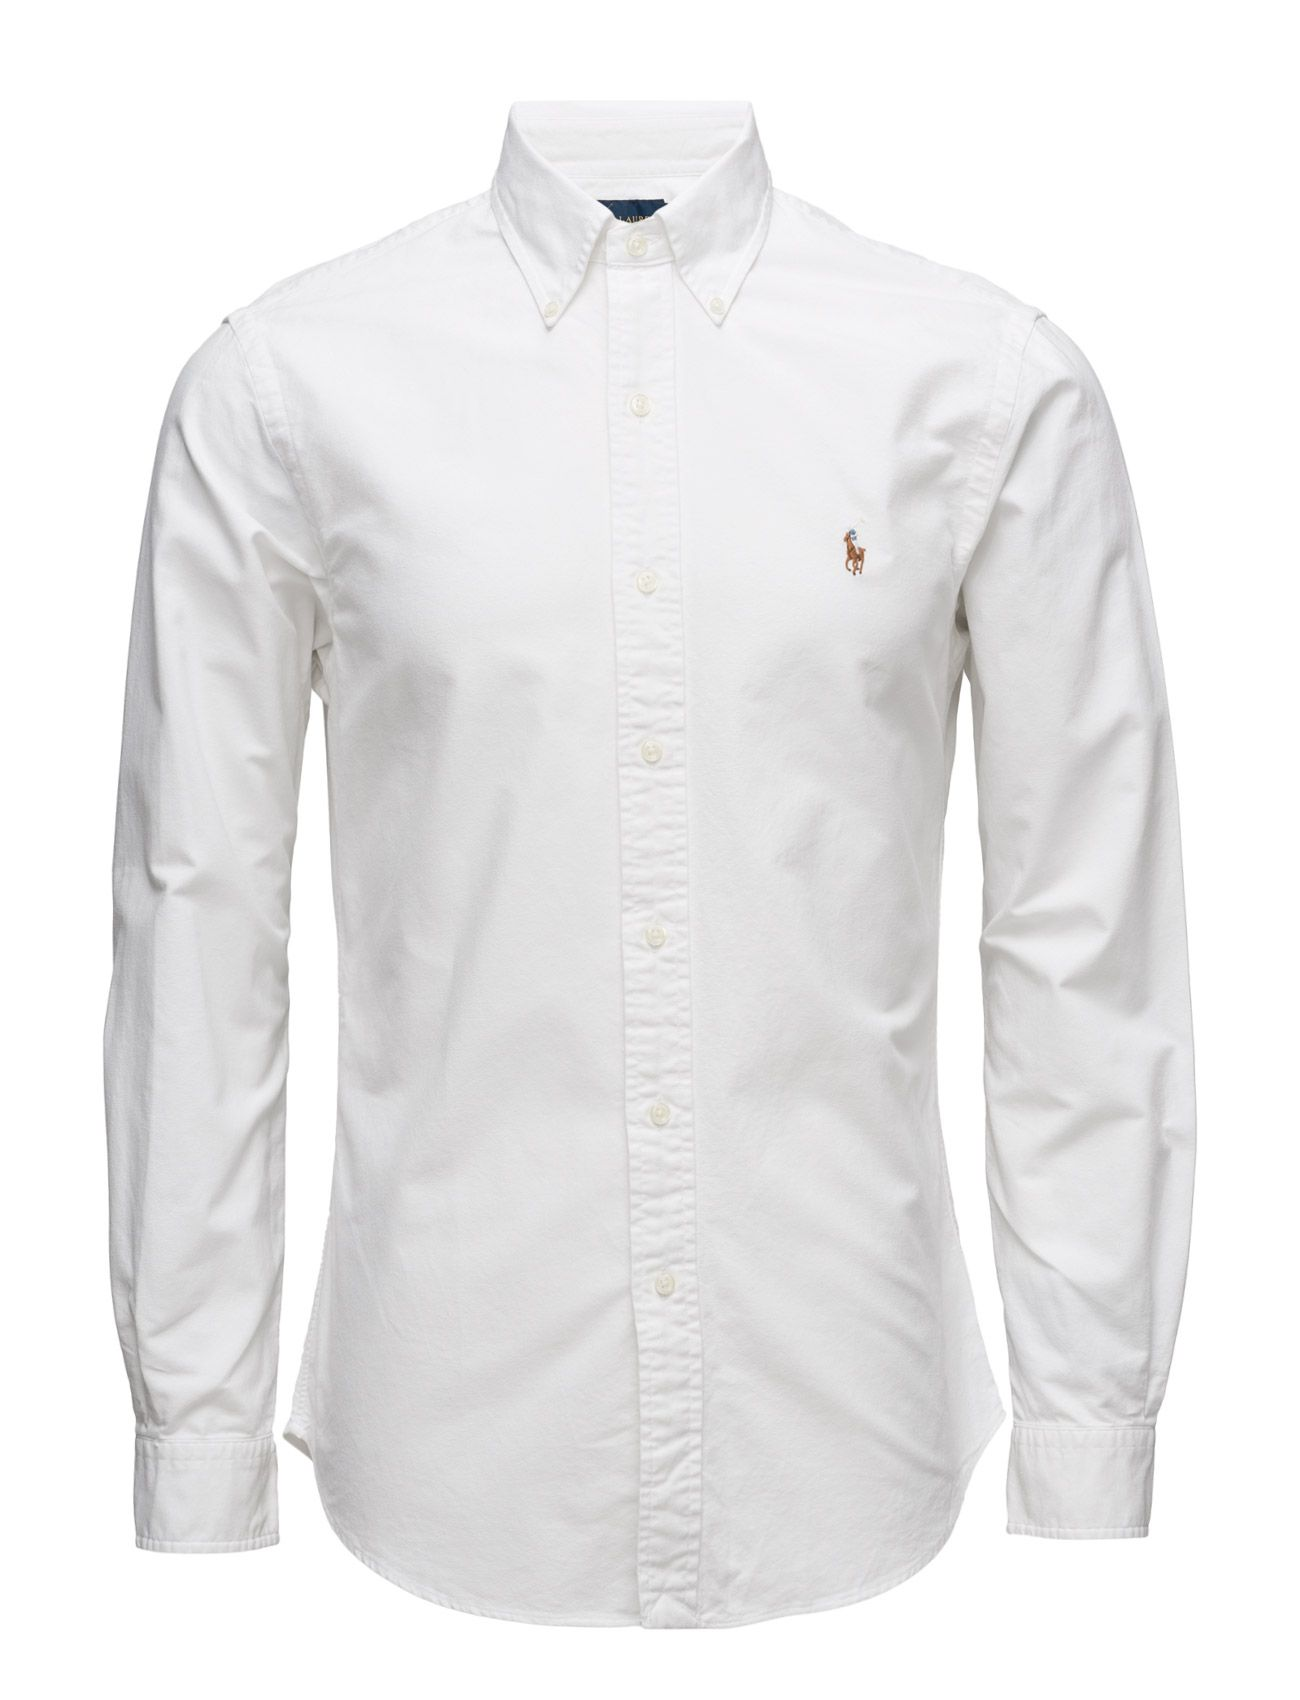 polo ralph lauren slim fit cotton oxford shirt - shirts white men tops  casual,polo